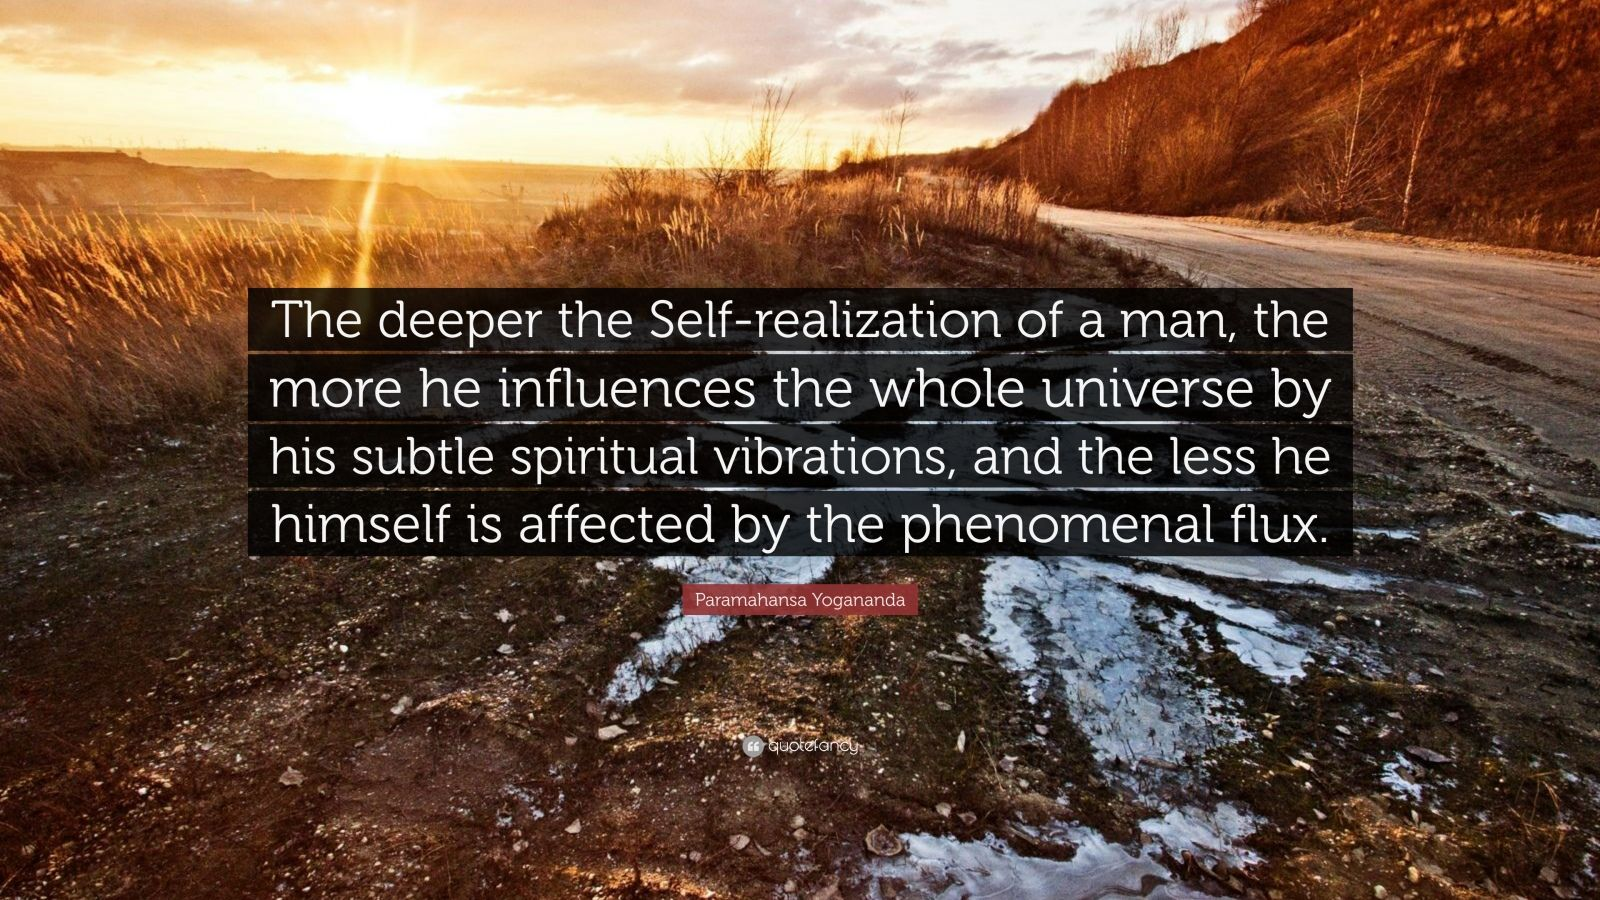 """Paramahansa Yogananda Quote: """"The deeper the Self-realization of a man, the more he influences the whole universe by his subtle spiritual vibrations, and the less he himself is affected by the phenomenal flux."""""""